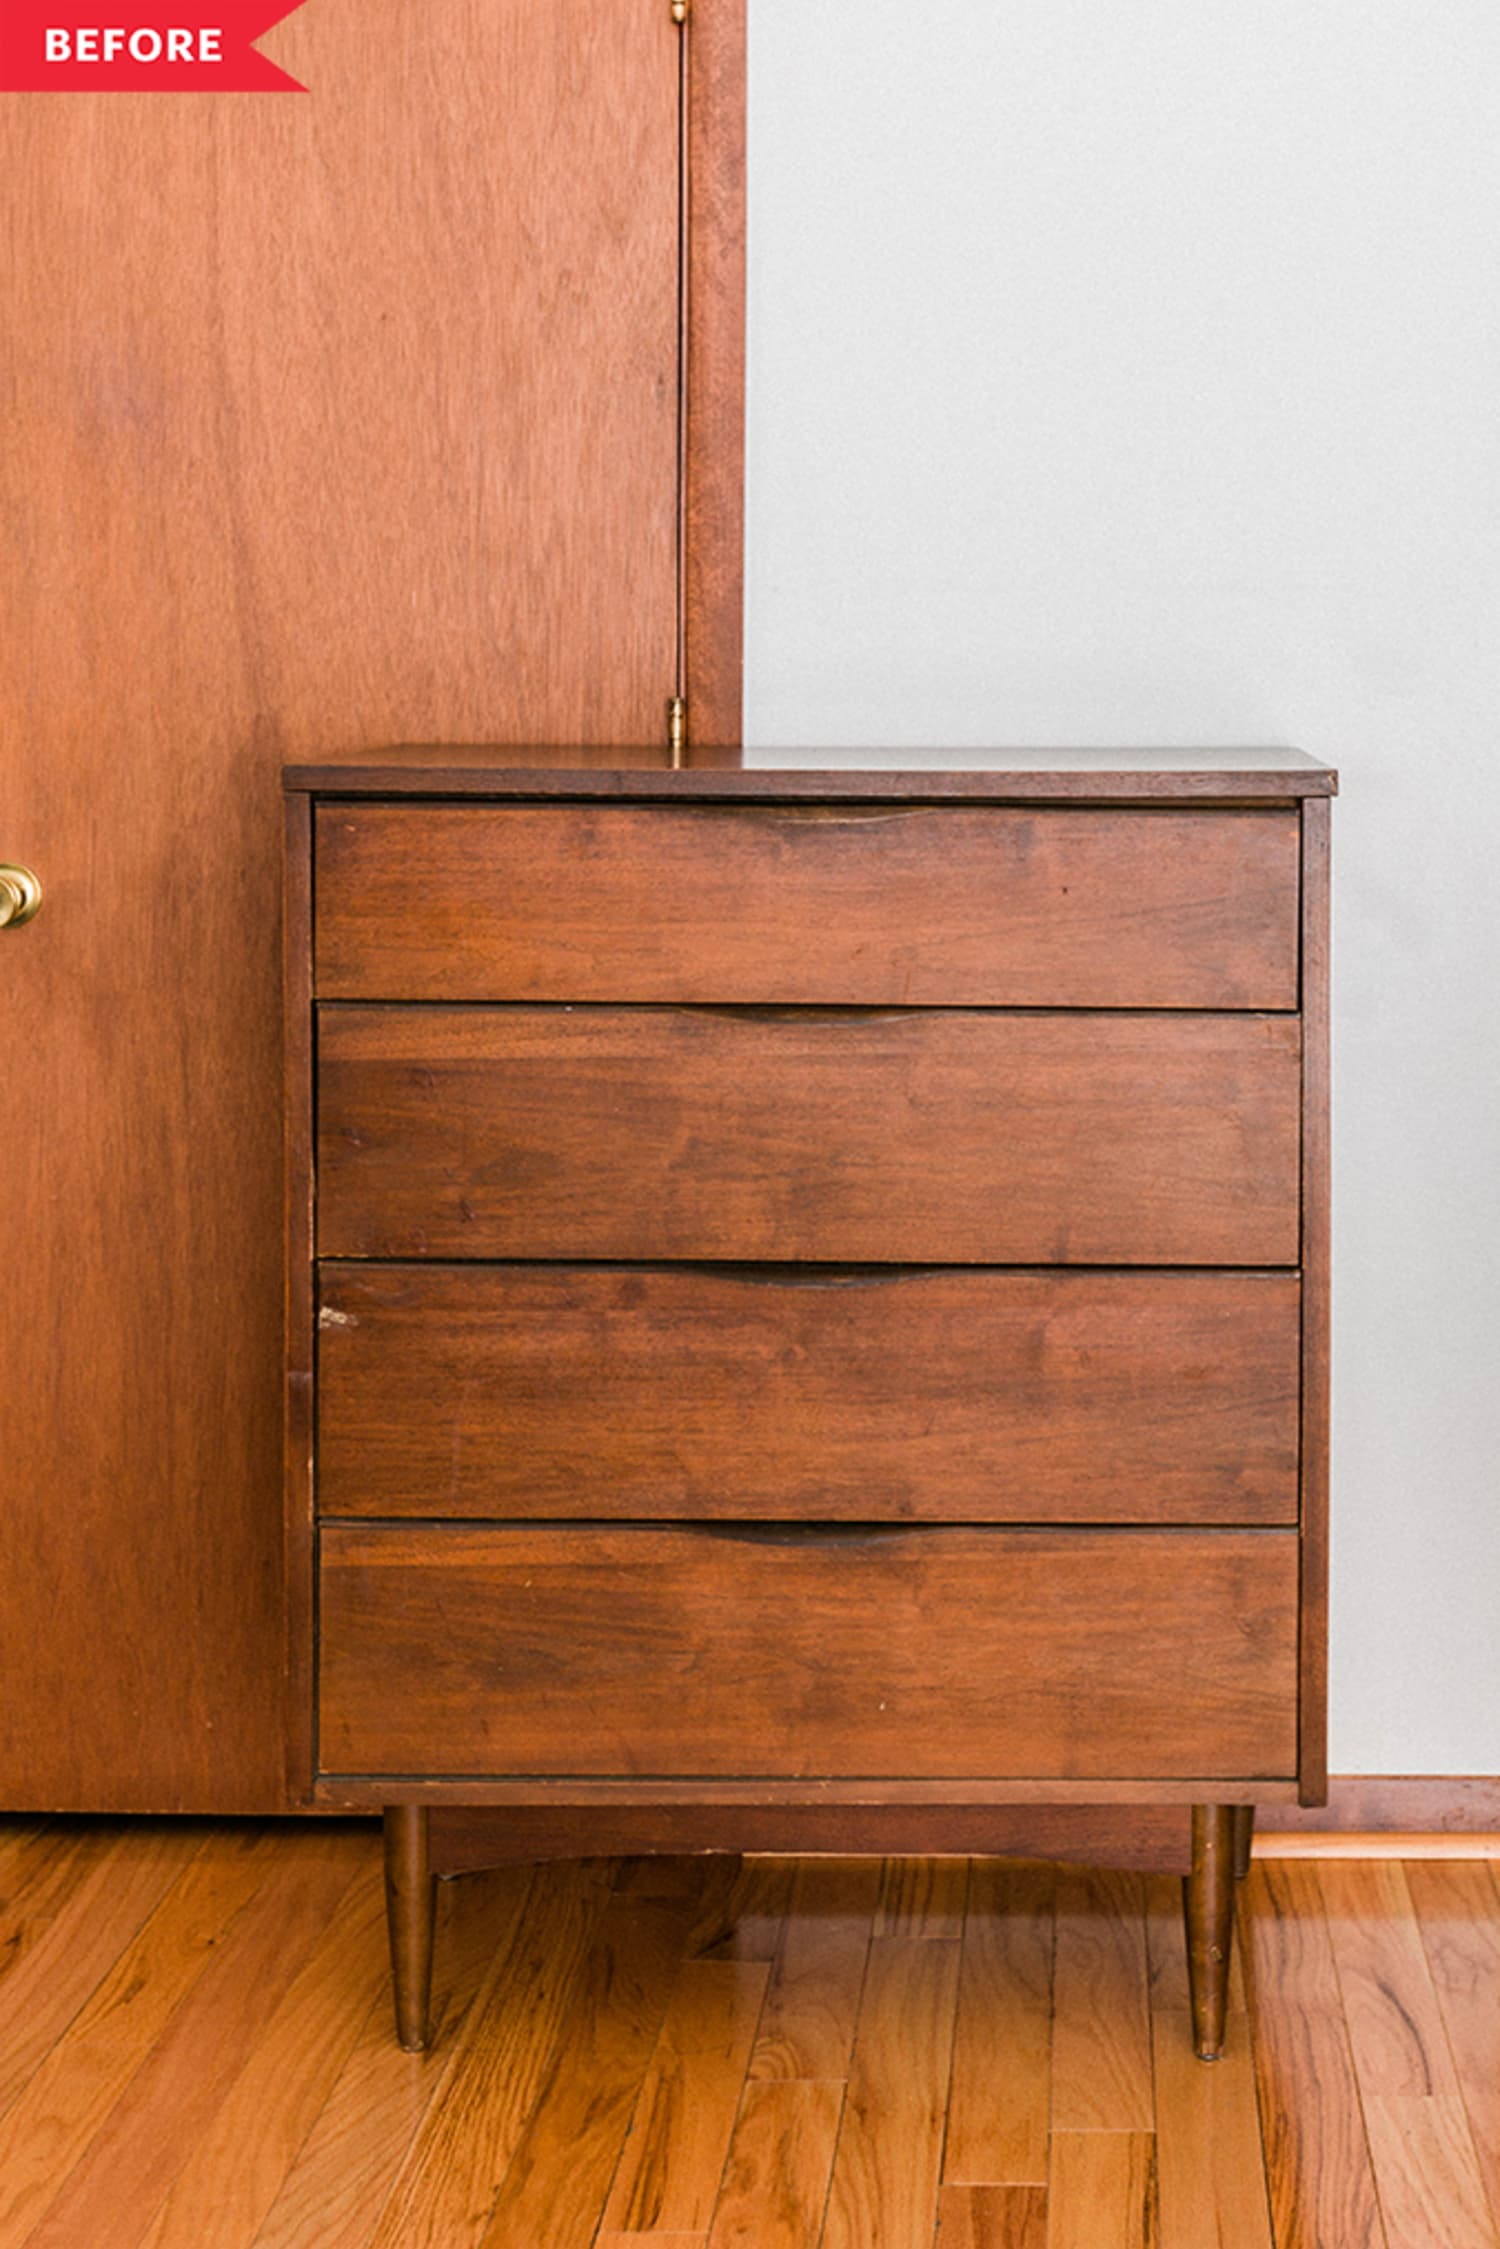 Before and After: A Mid-Century-Approved Redo for This Damaged Dresser